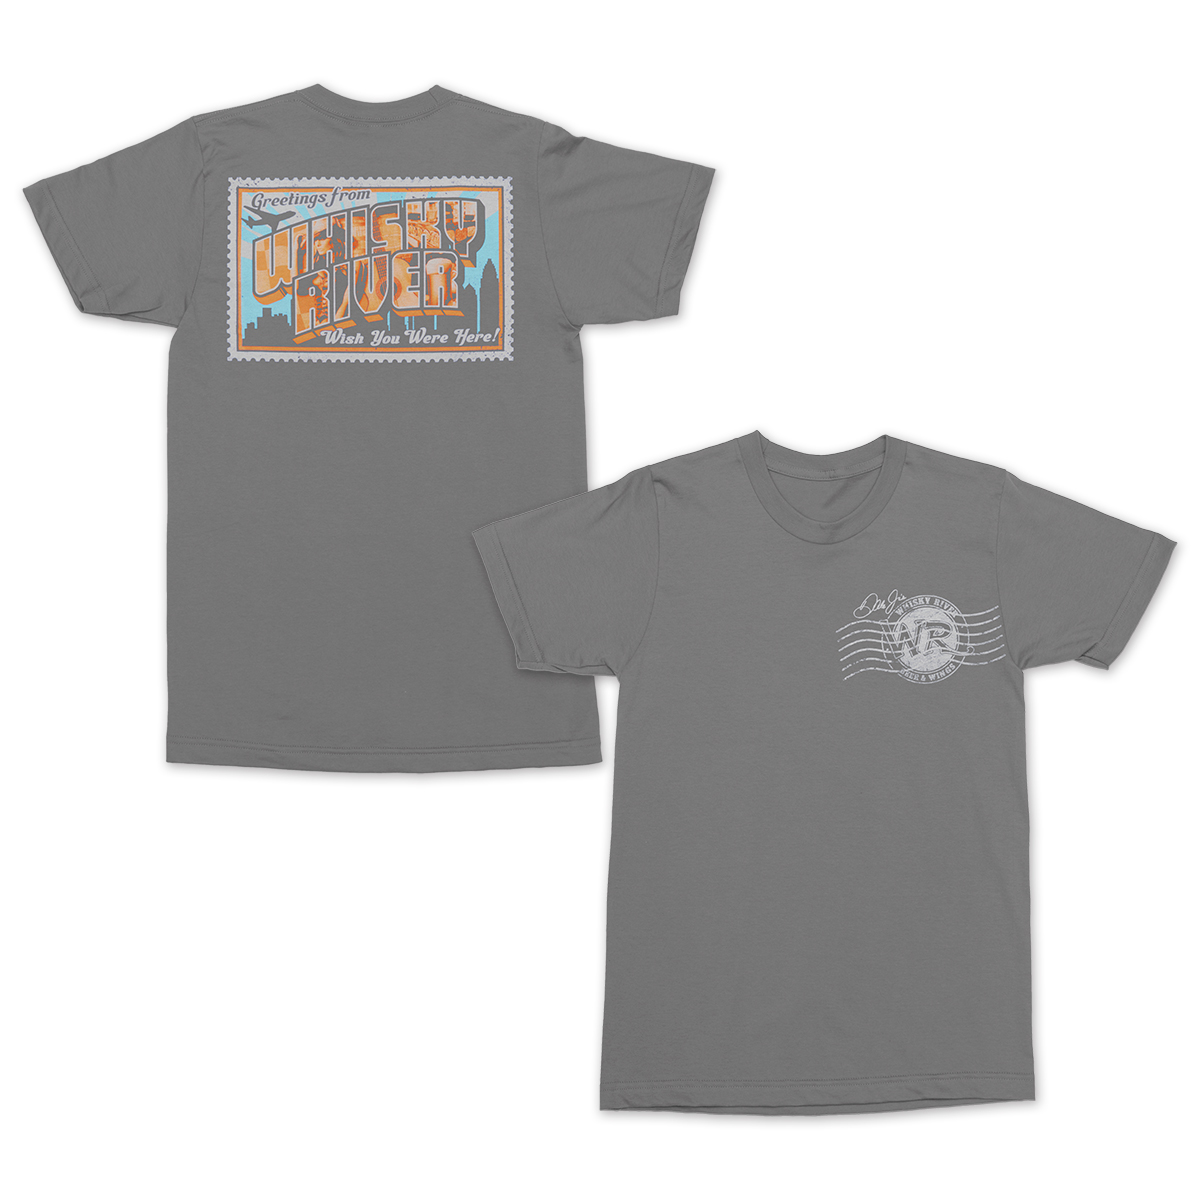 Whisky River Postcard T-shirt